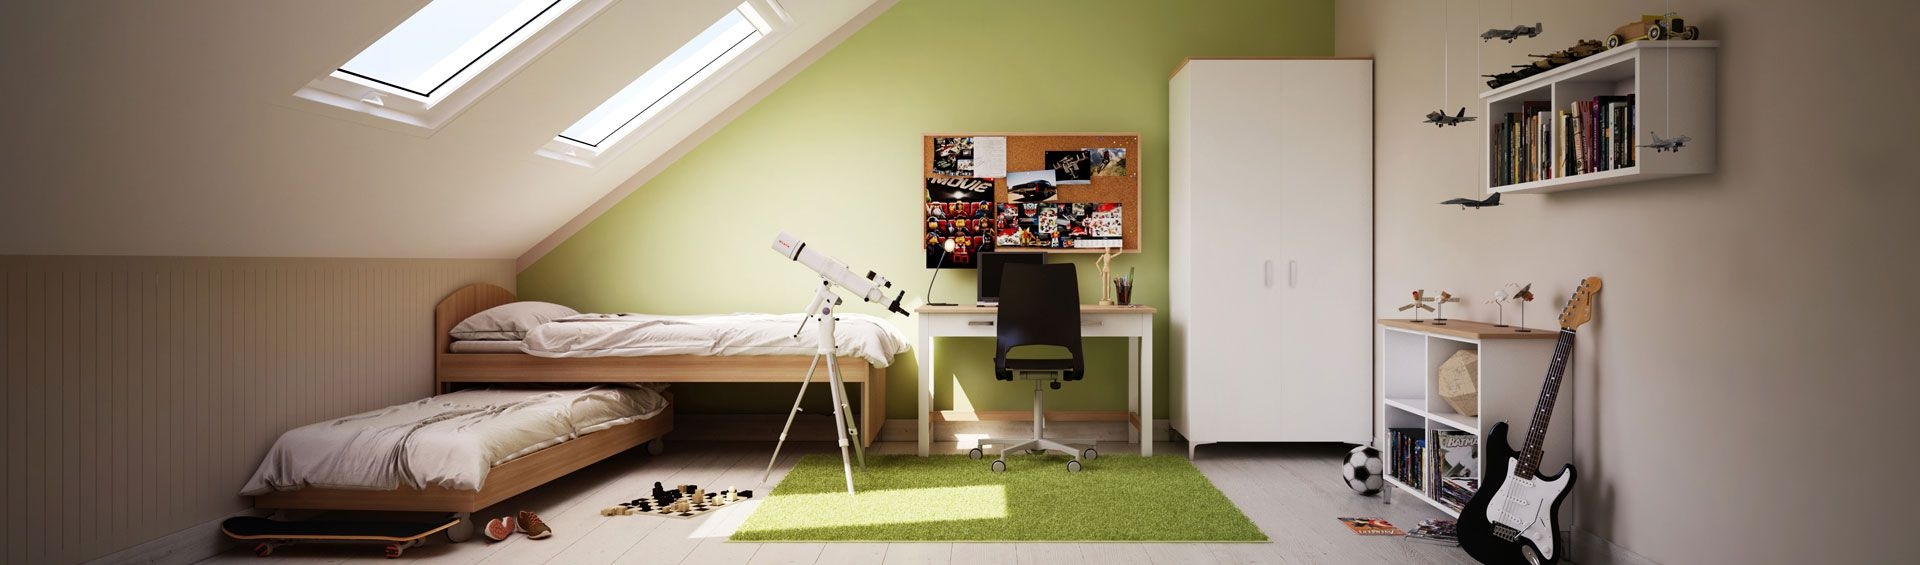 BOY'S ROOM FURNITURE - DESIGN IT BY YOURSELF!